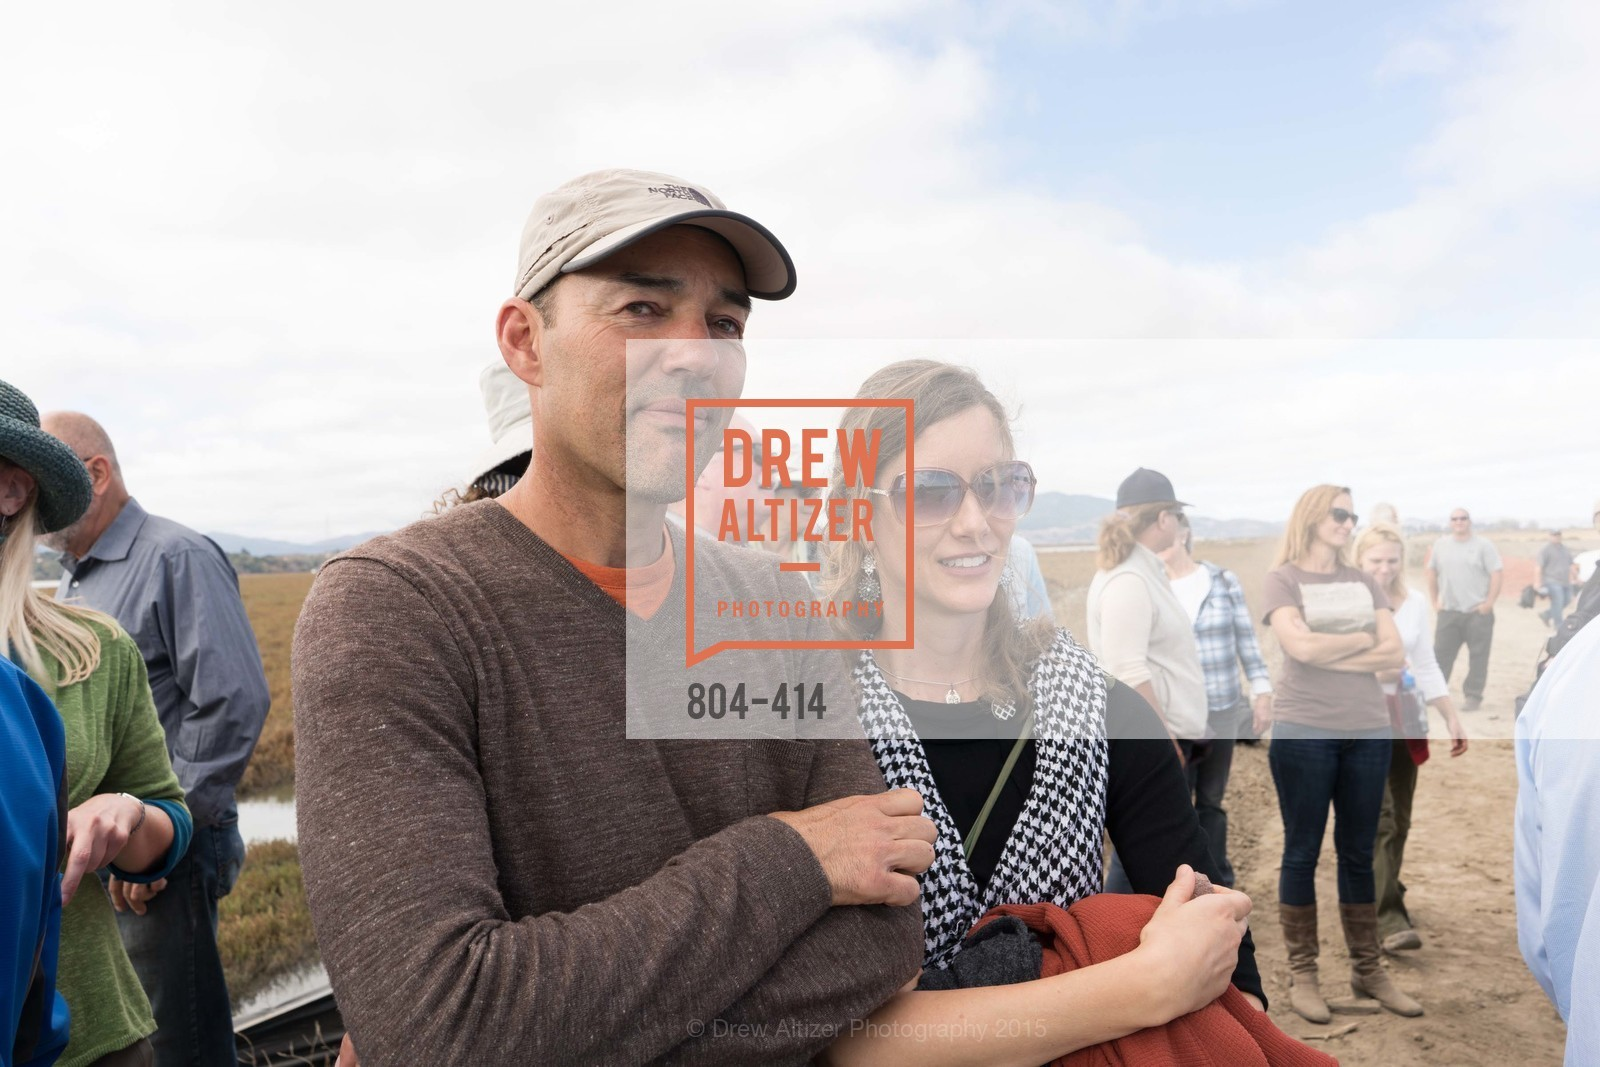 Top Picks, SEA CHANGE at Sears Point with Sonoma Land Trust, October 25th, 2015, Photo,Drew Altizer, Drew Altizer Photography, full-service agency, private events, San Francisco photographer, photographer california